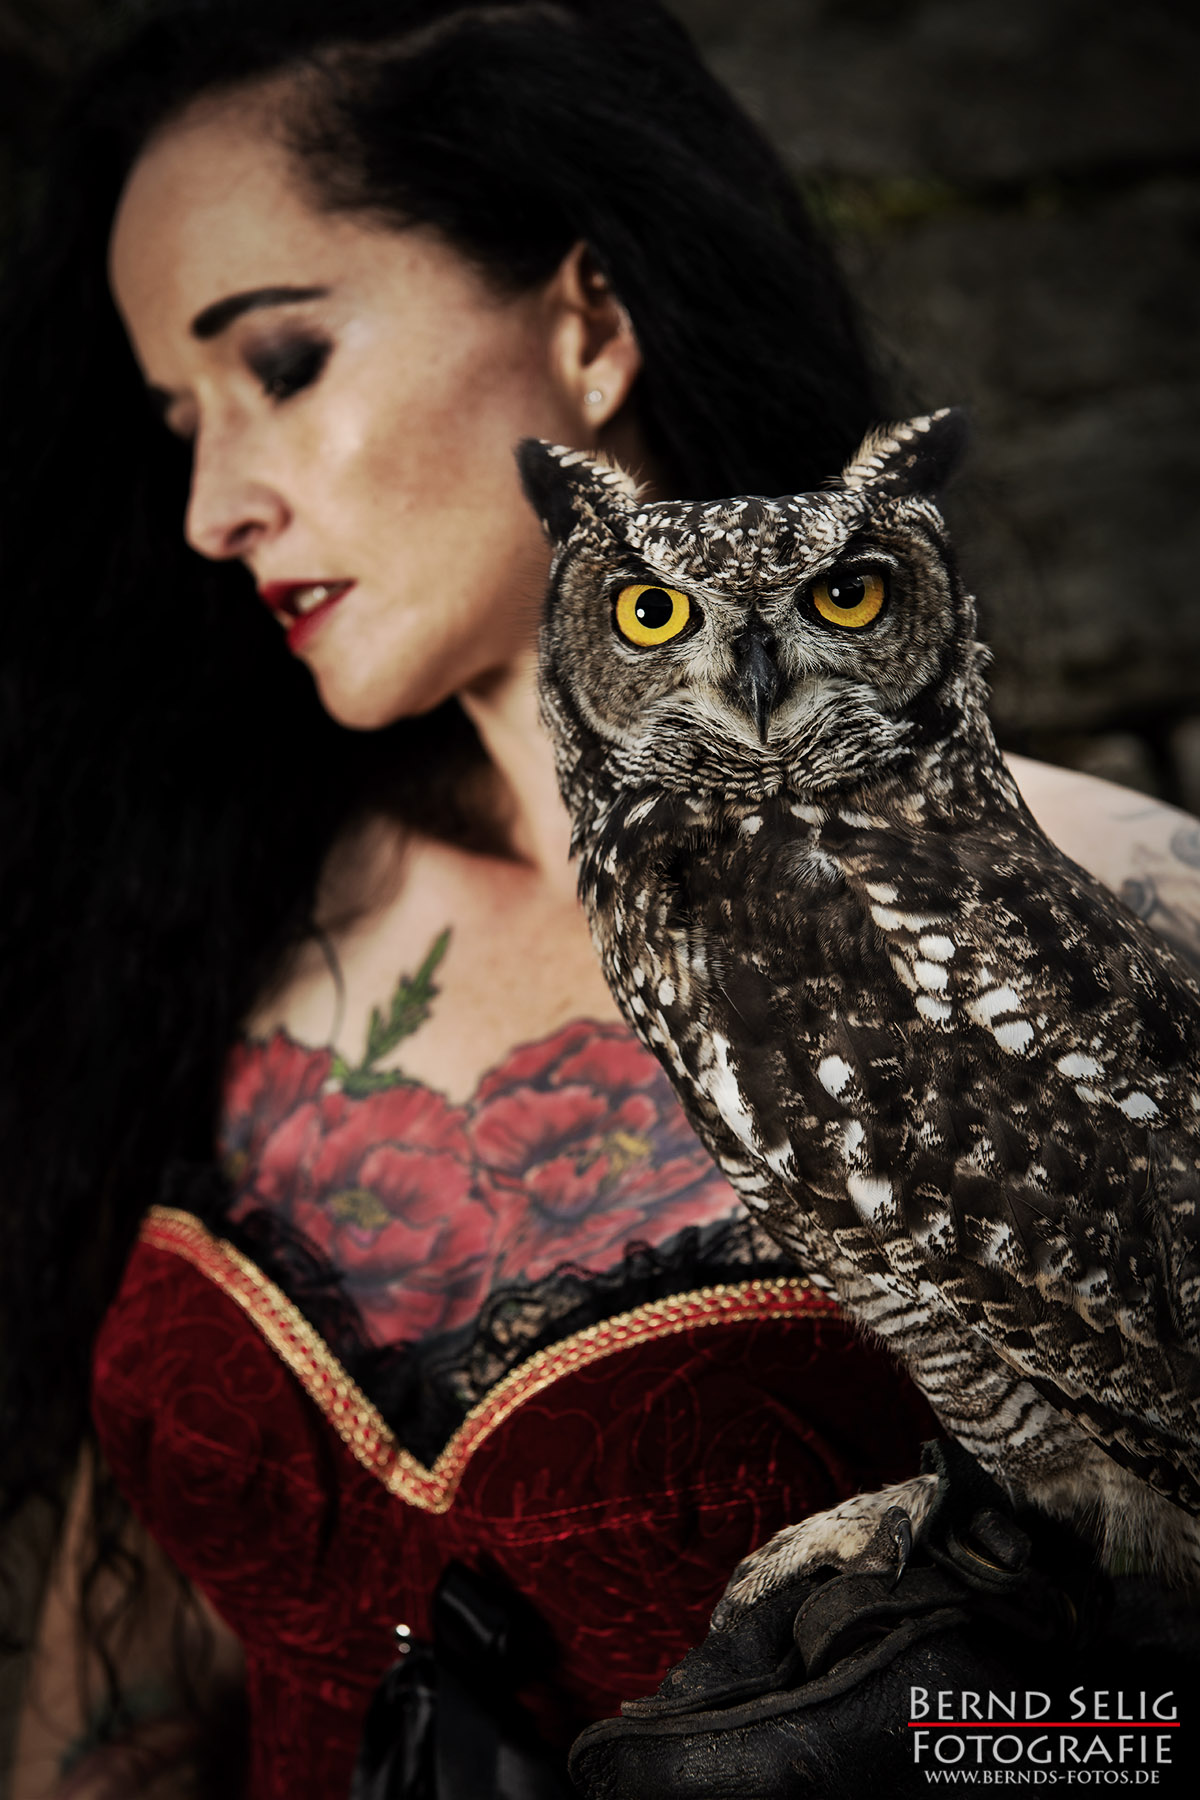 Portaitshooting mit Greifvogel in Detmold